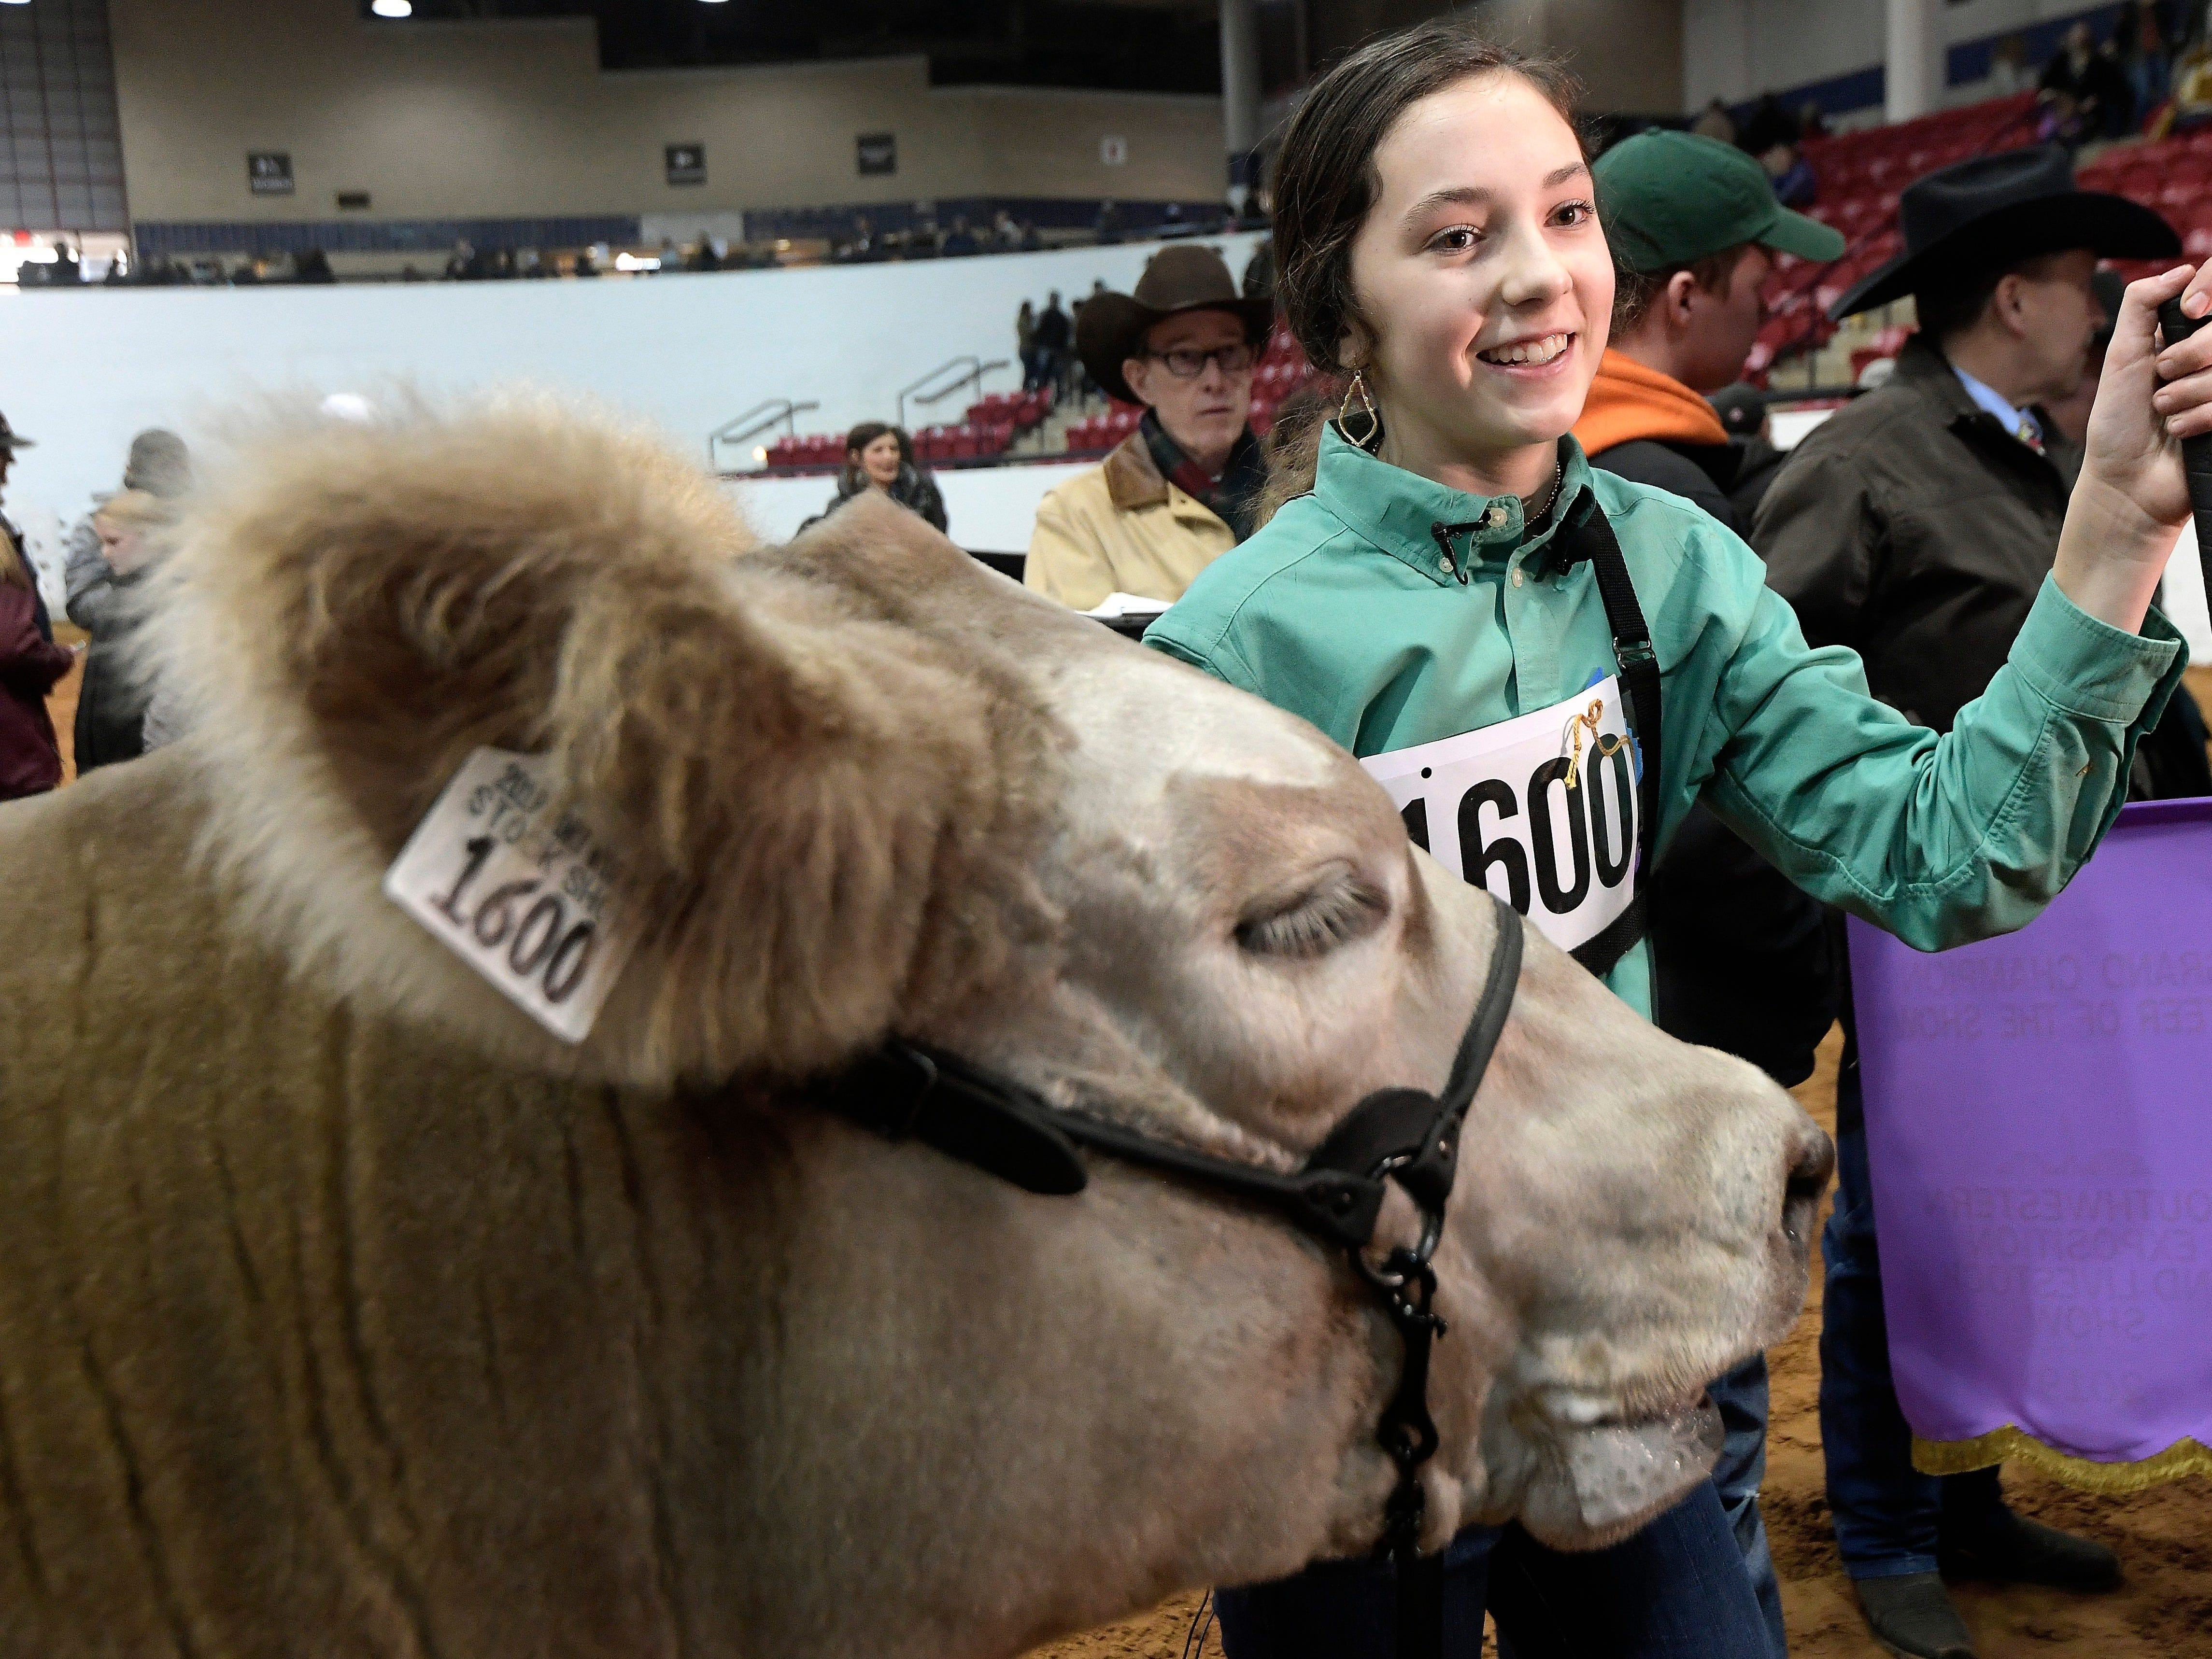 Aven Horn stands with her steer Bentley during the Grand Champion steer round of the Stock Show at Will Rogers Memorial Center in Fort Worth, Texas, Friday, Feb. 8, 2019. Bentley was named Grand Champion steer.